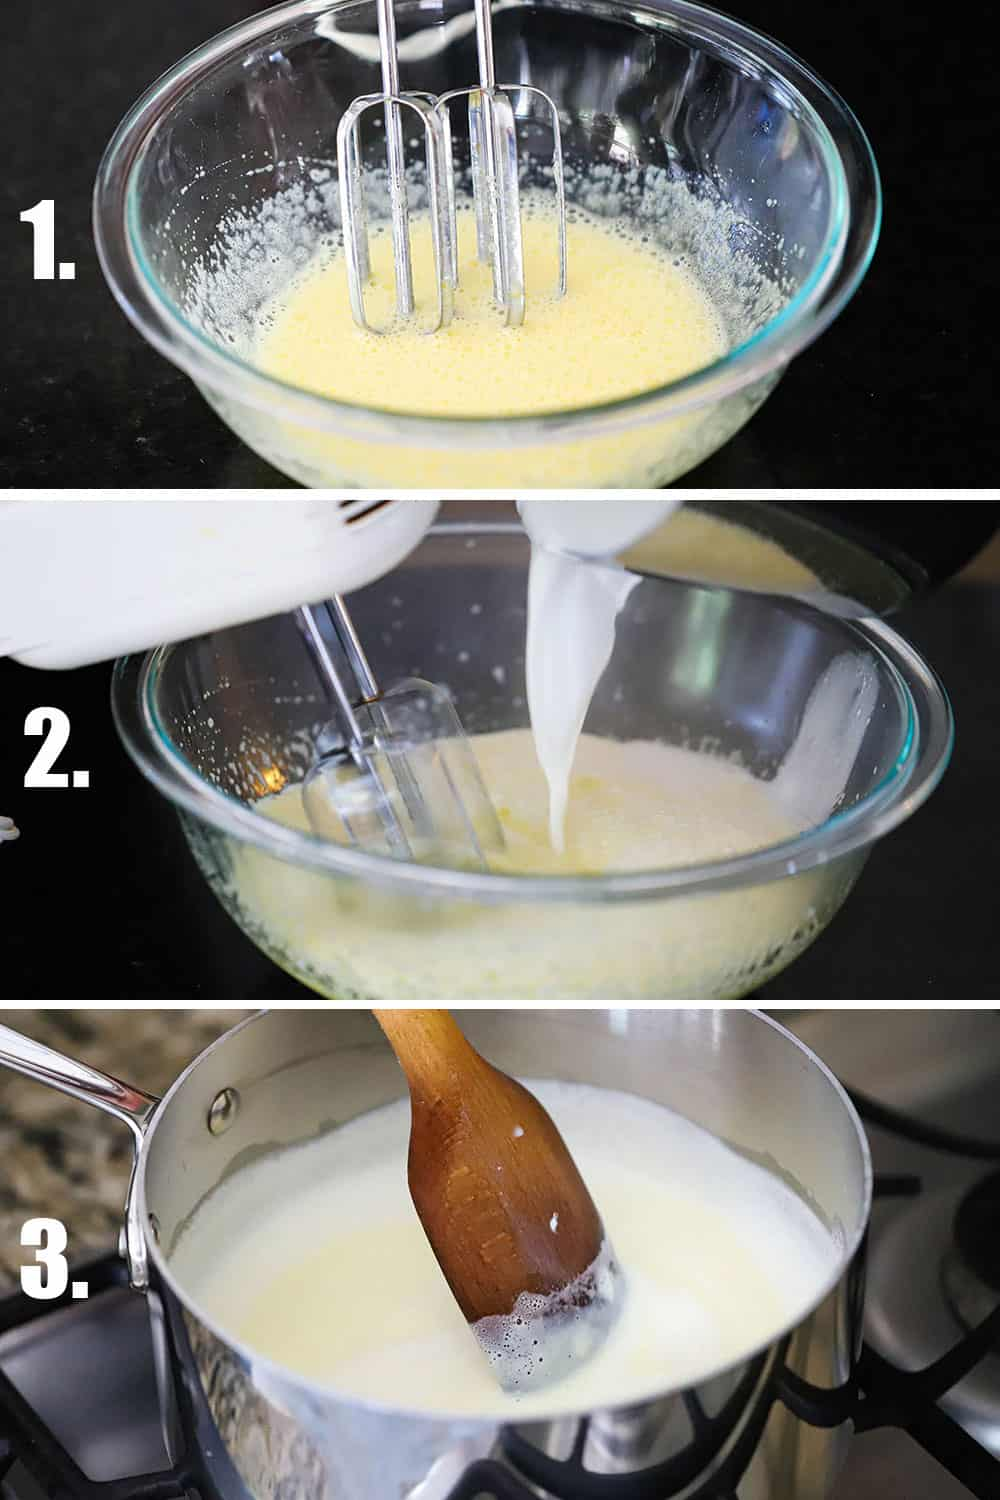 3 stacked images, top a hand mixer beating eggs and sugar in a glass bowl, middle is hot cream being poured into the beaten eggs, and the bottom a wooden spoon stirring the custard in a sliver saucepan.